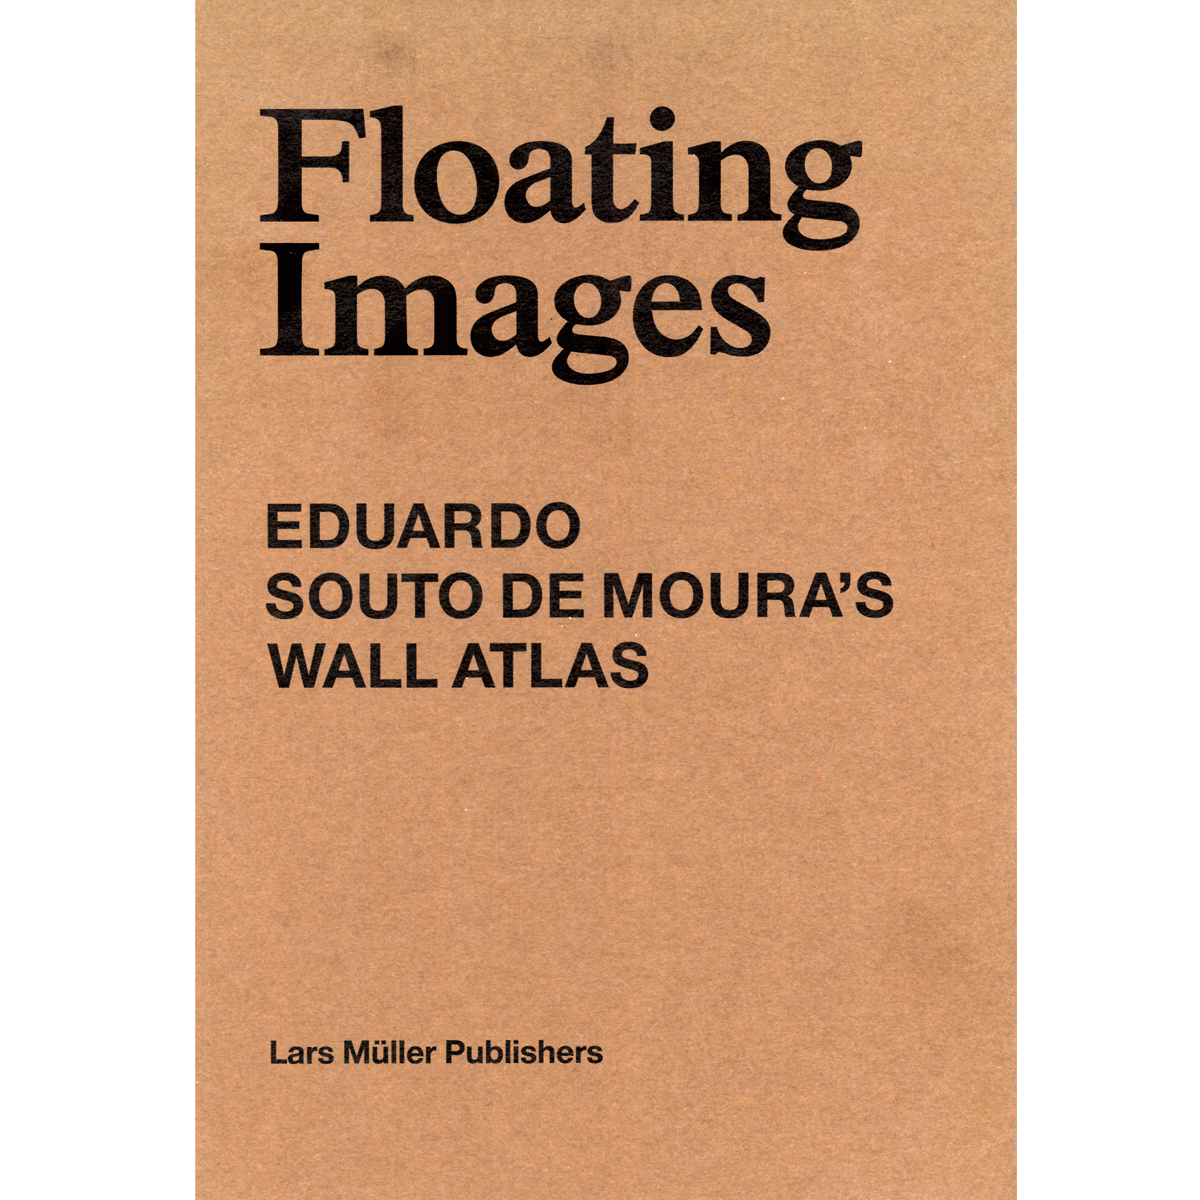 Floating Images